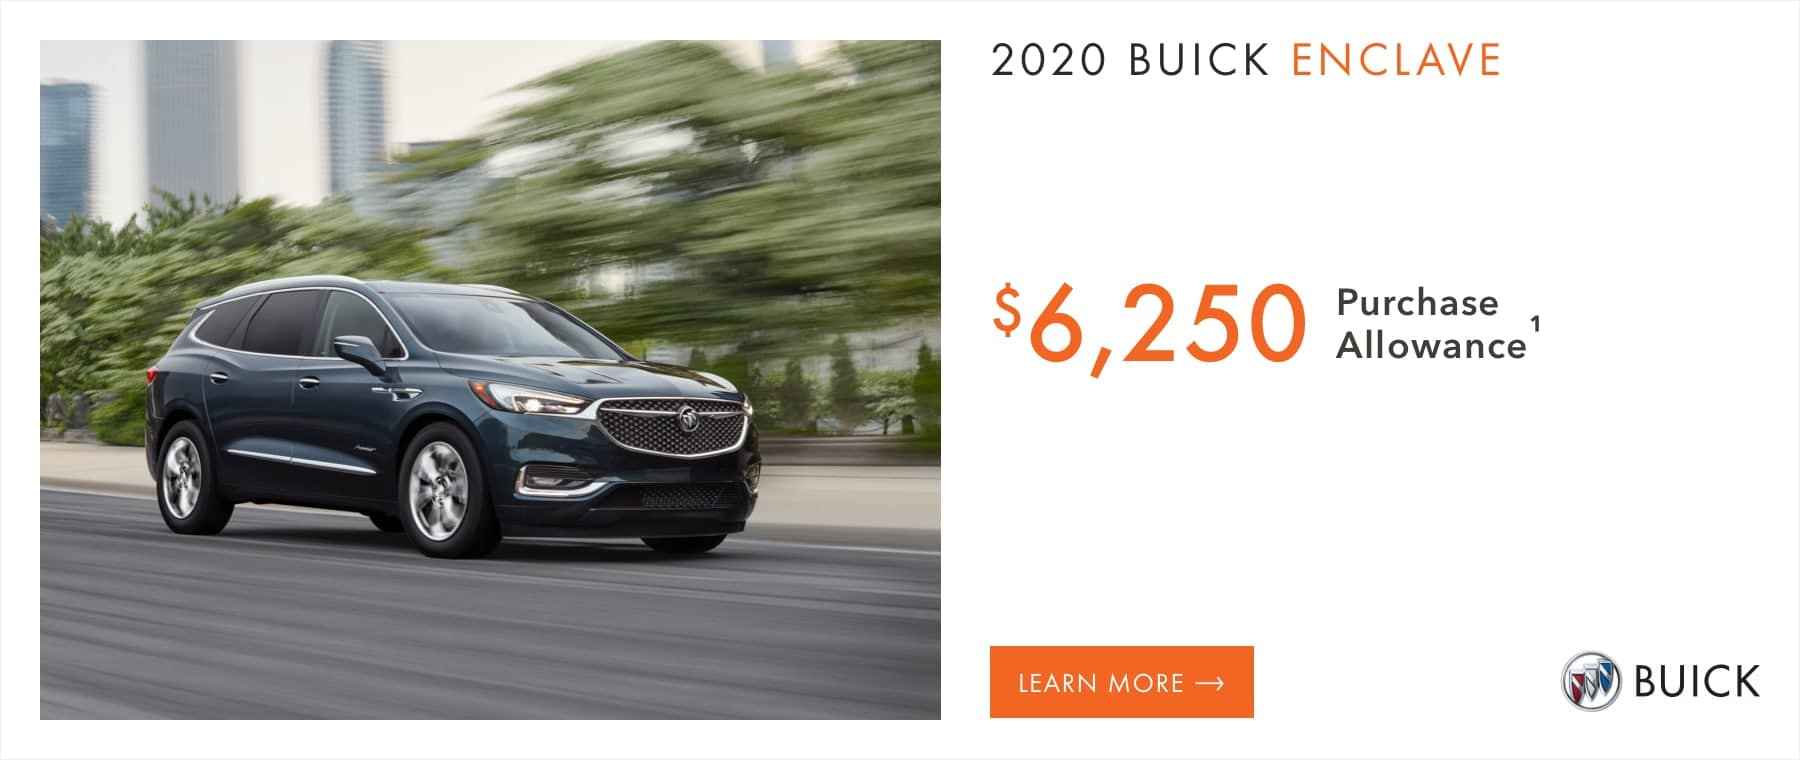 2020 Buick Enclave Models - $6,250 Purchase Allowance